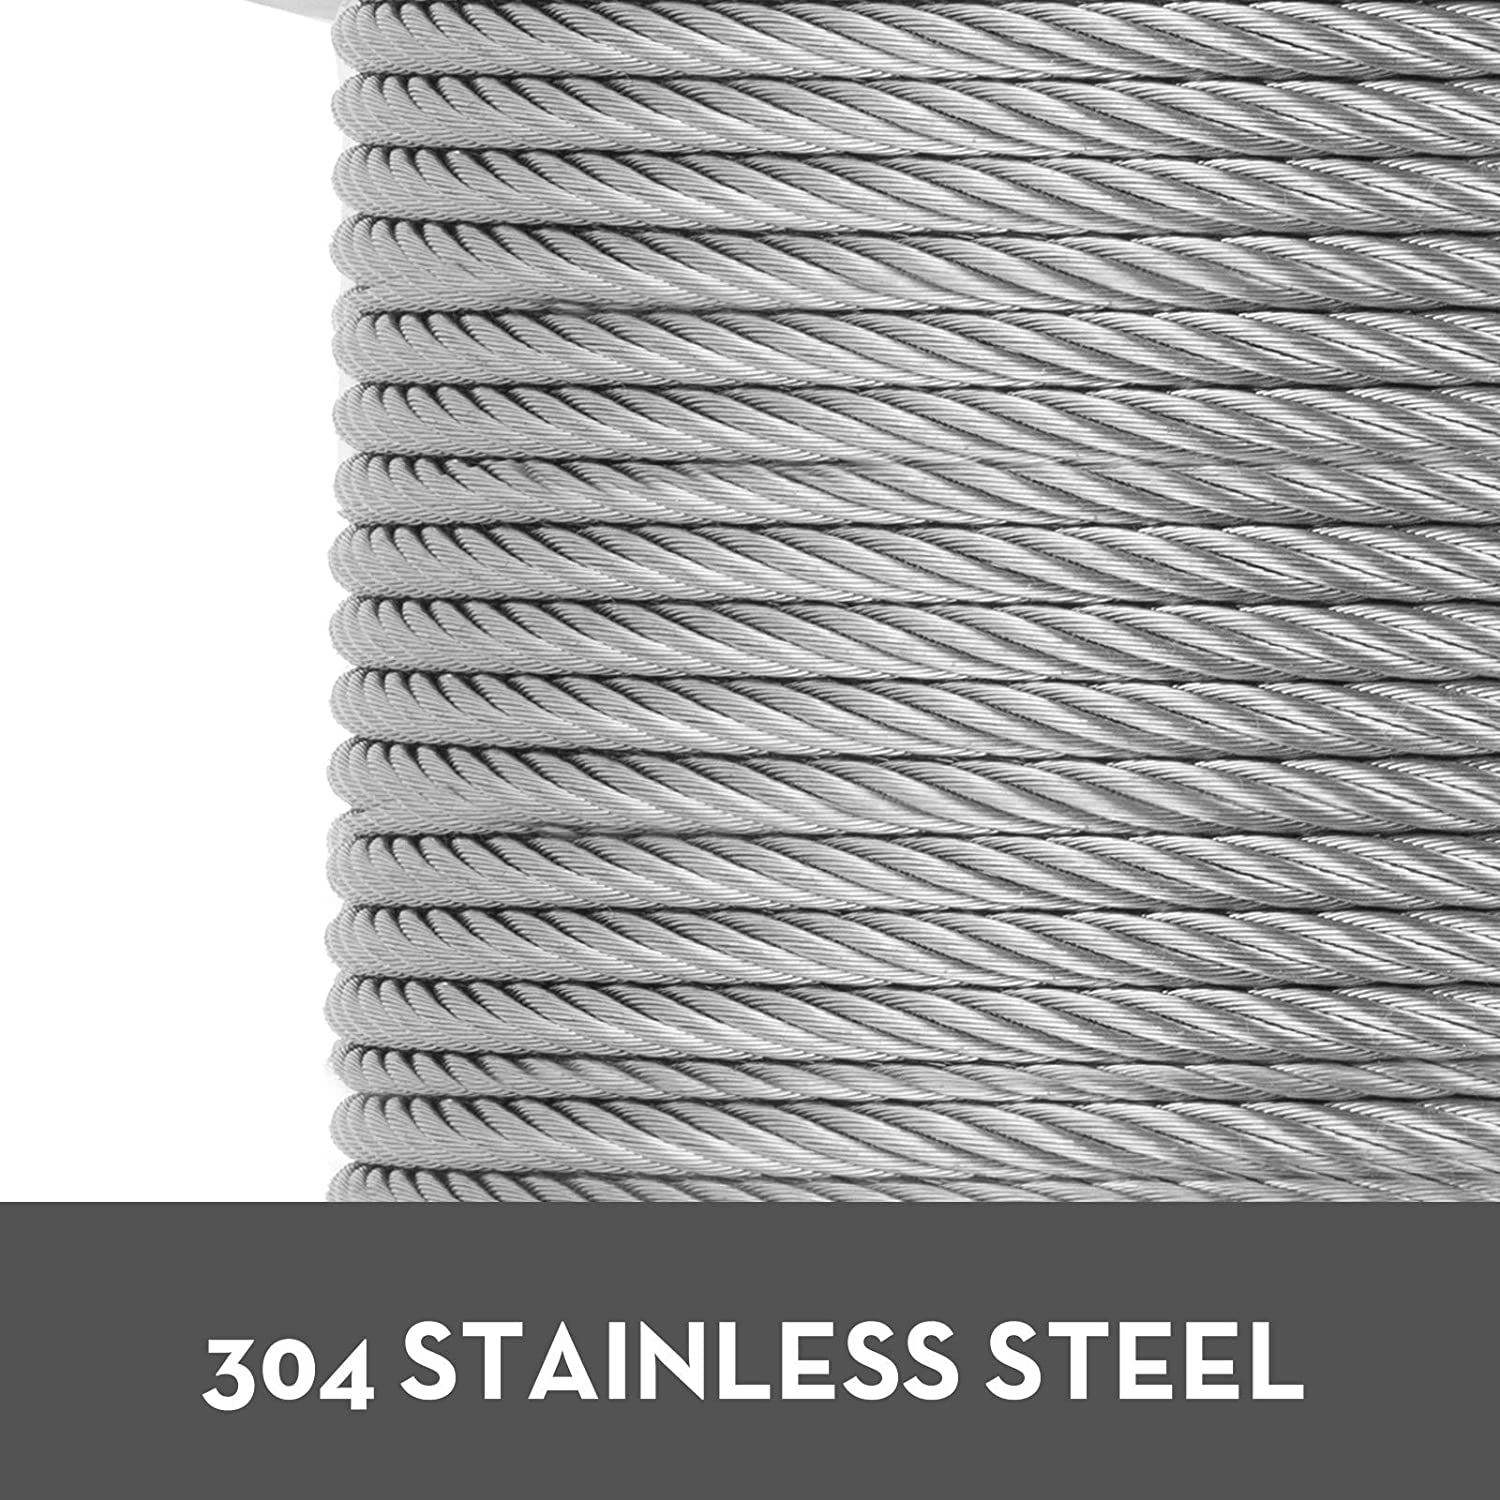 Mophorn 304 Stainless Steel Cable 1//4 Inch 7 X 19 Steel Wire Rope 200Feet Steel Cable for Railing Decking DIY Balustrade 1//4 Inch-200Feet